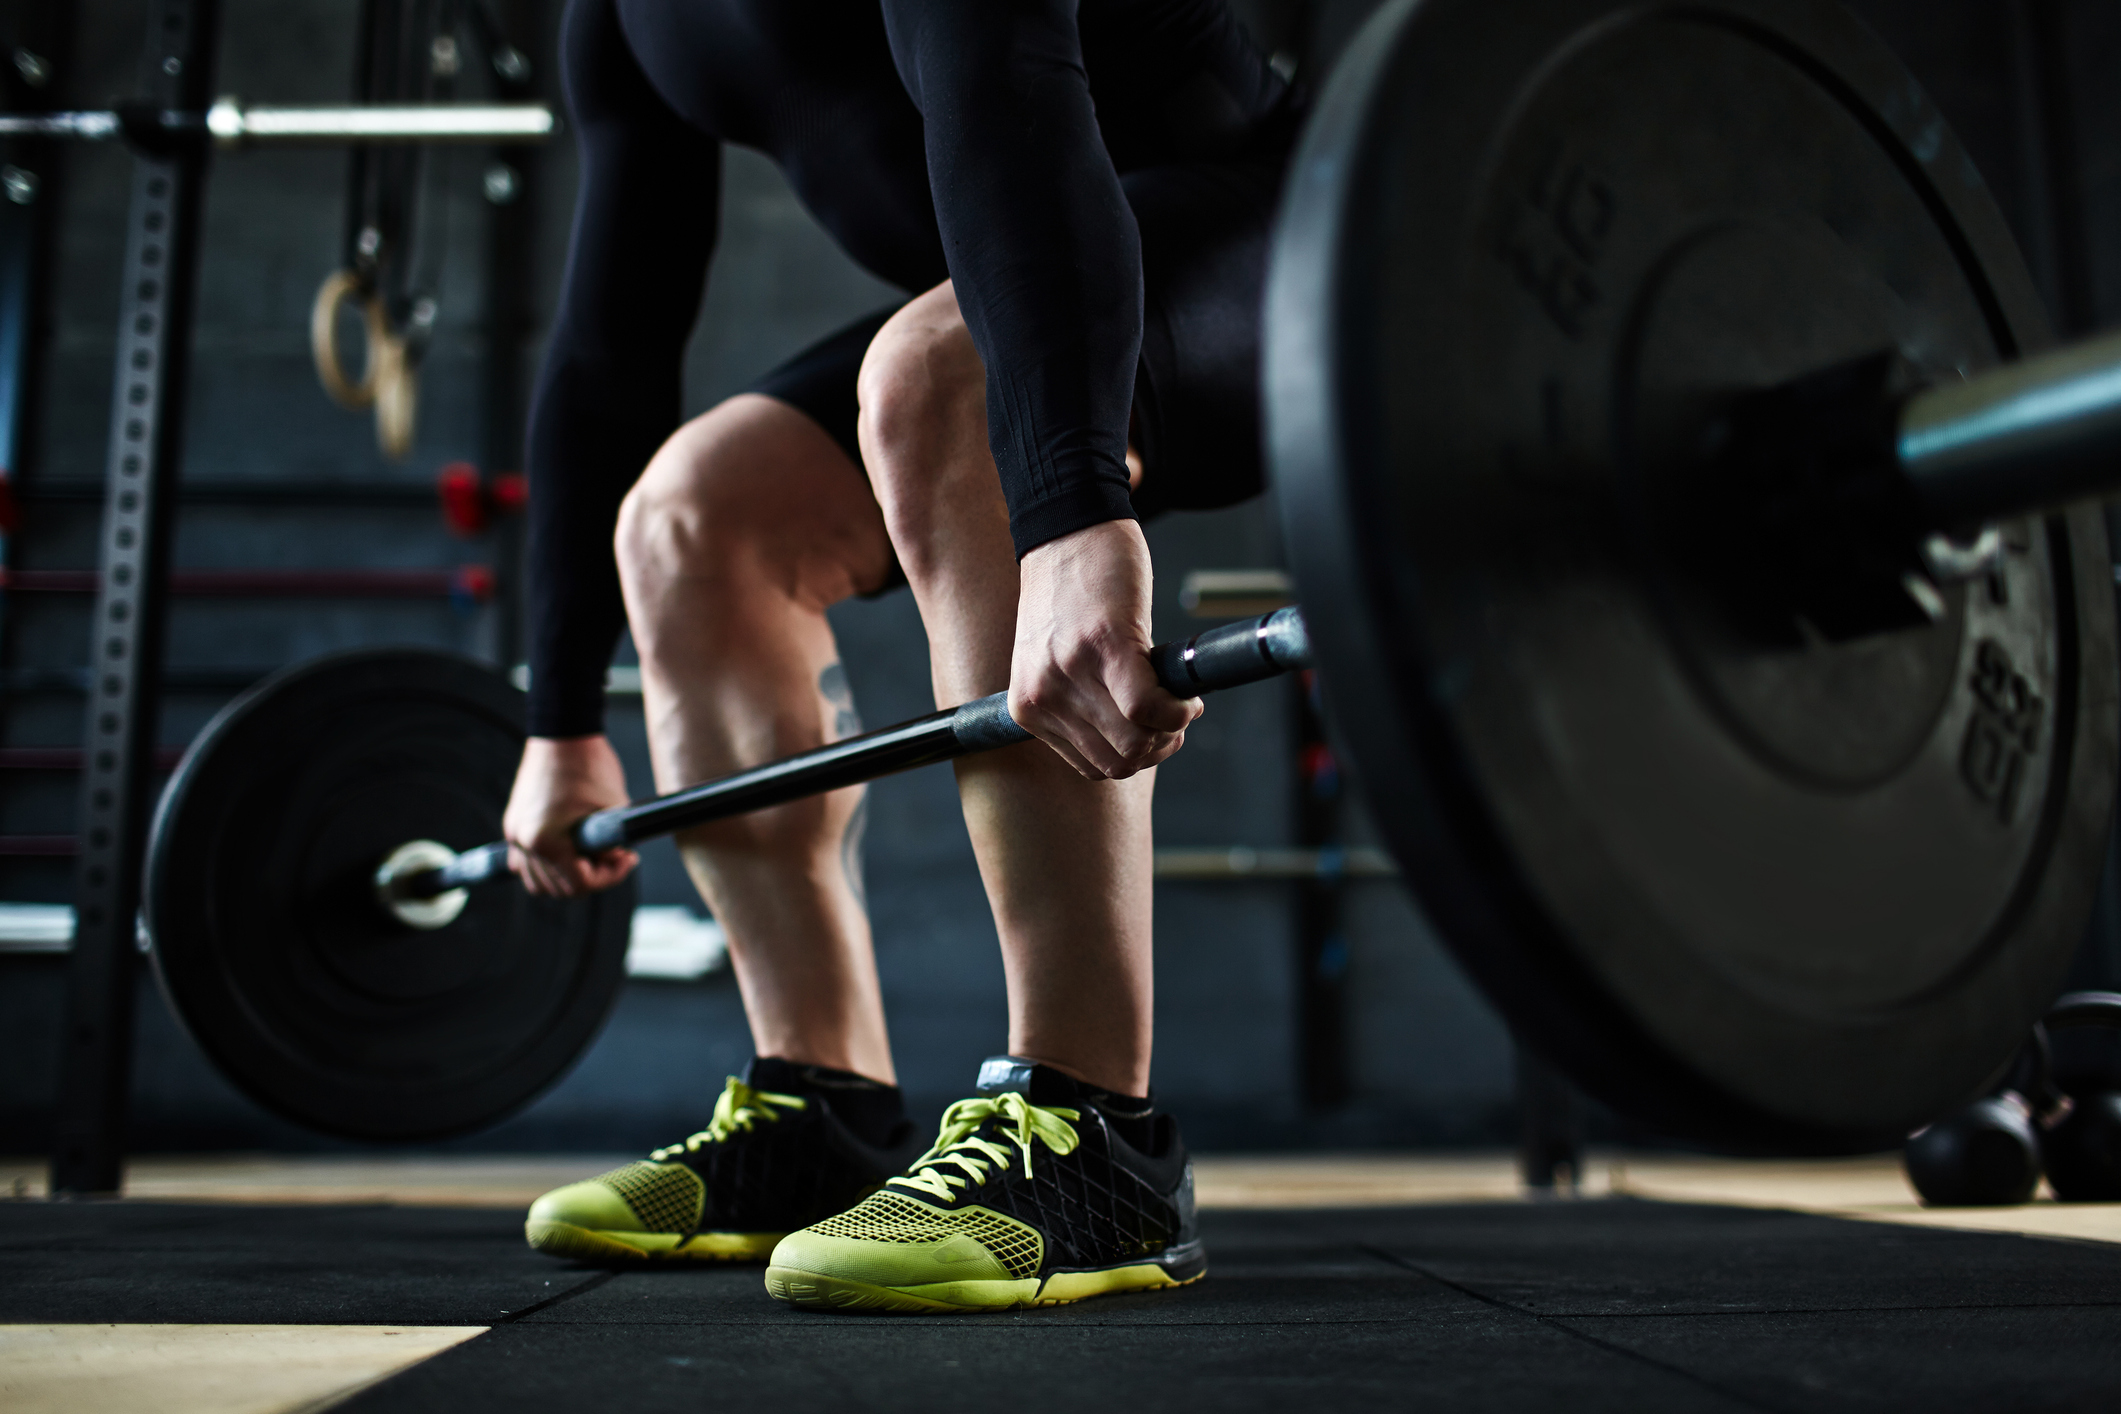 Athlete Development - Accelerating performance with optimized movement practices.